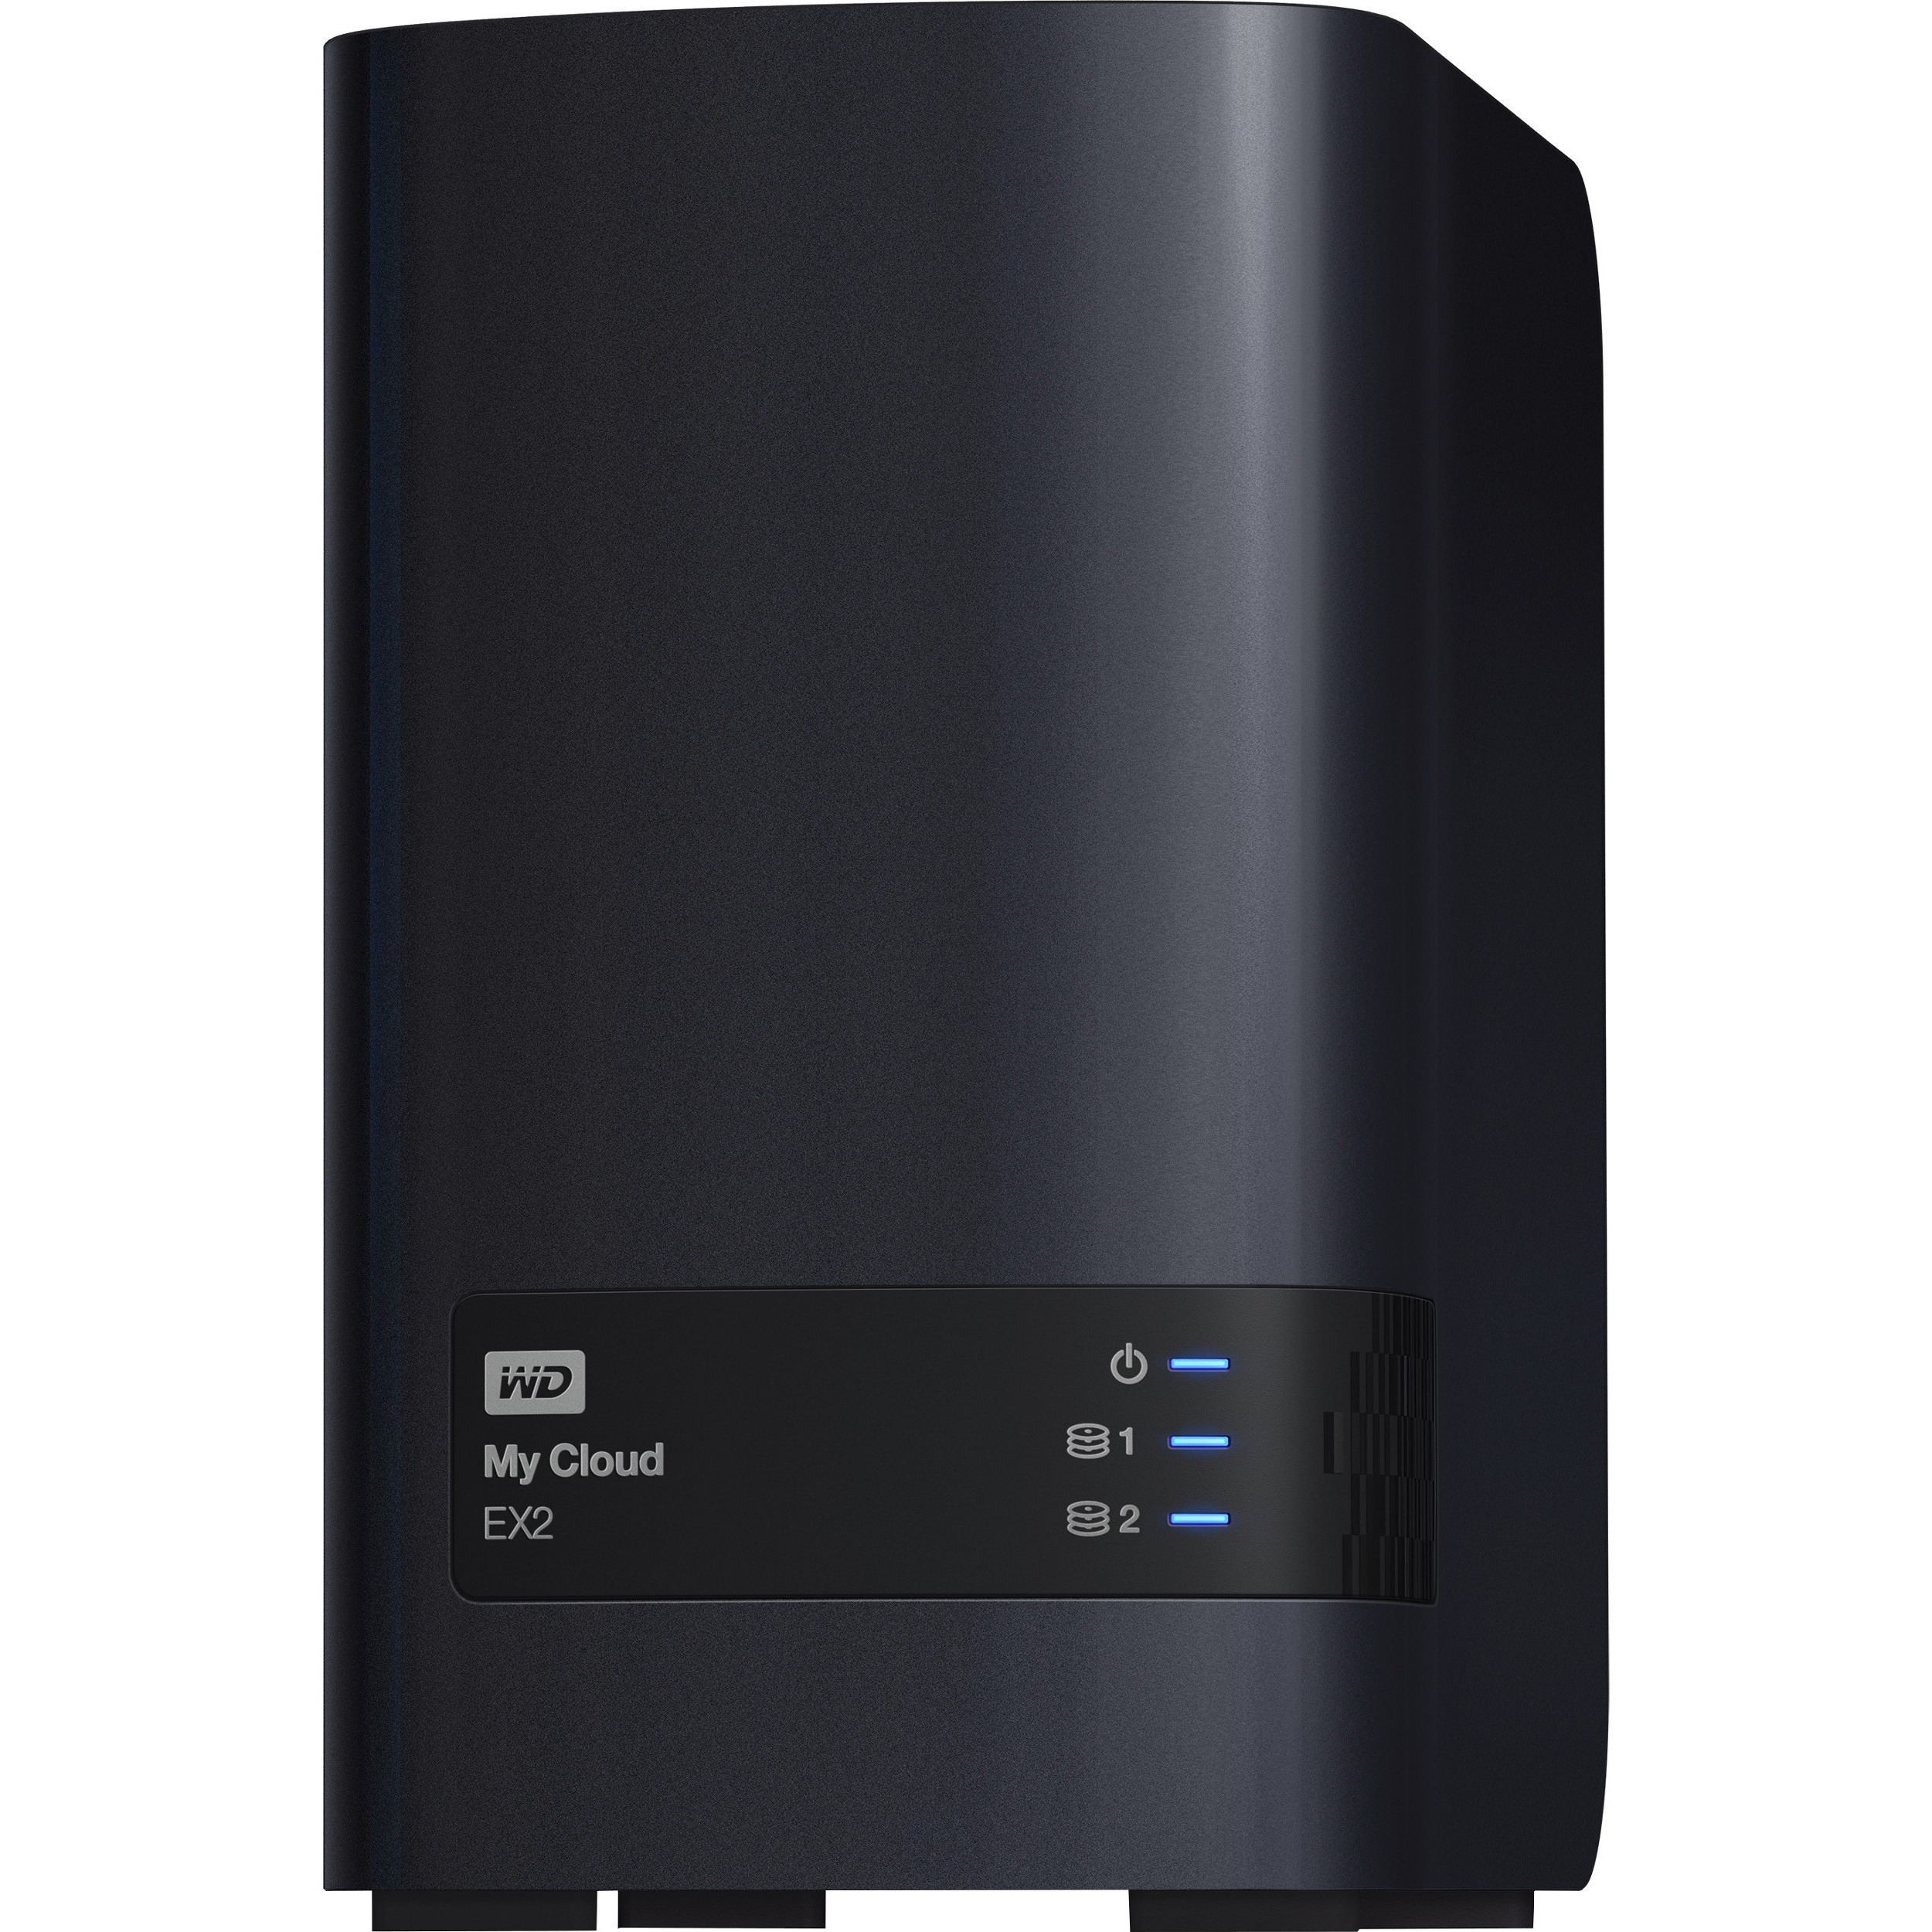 WD My Cloud EX2 WDBVBZ0040JCH-EESN 2 x Total Bays NAS Server